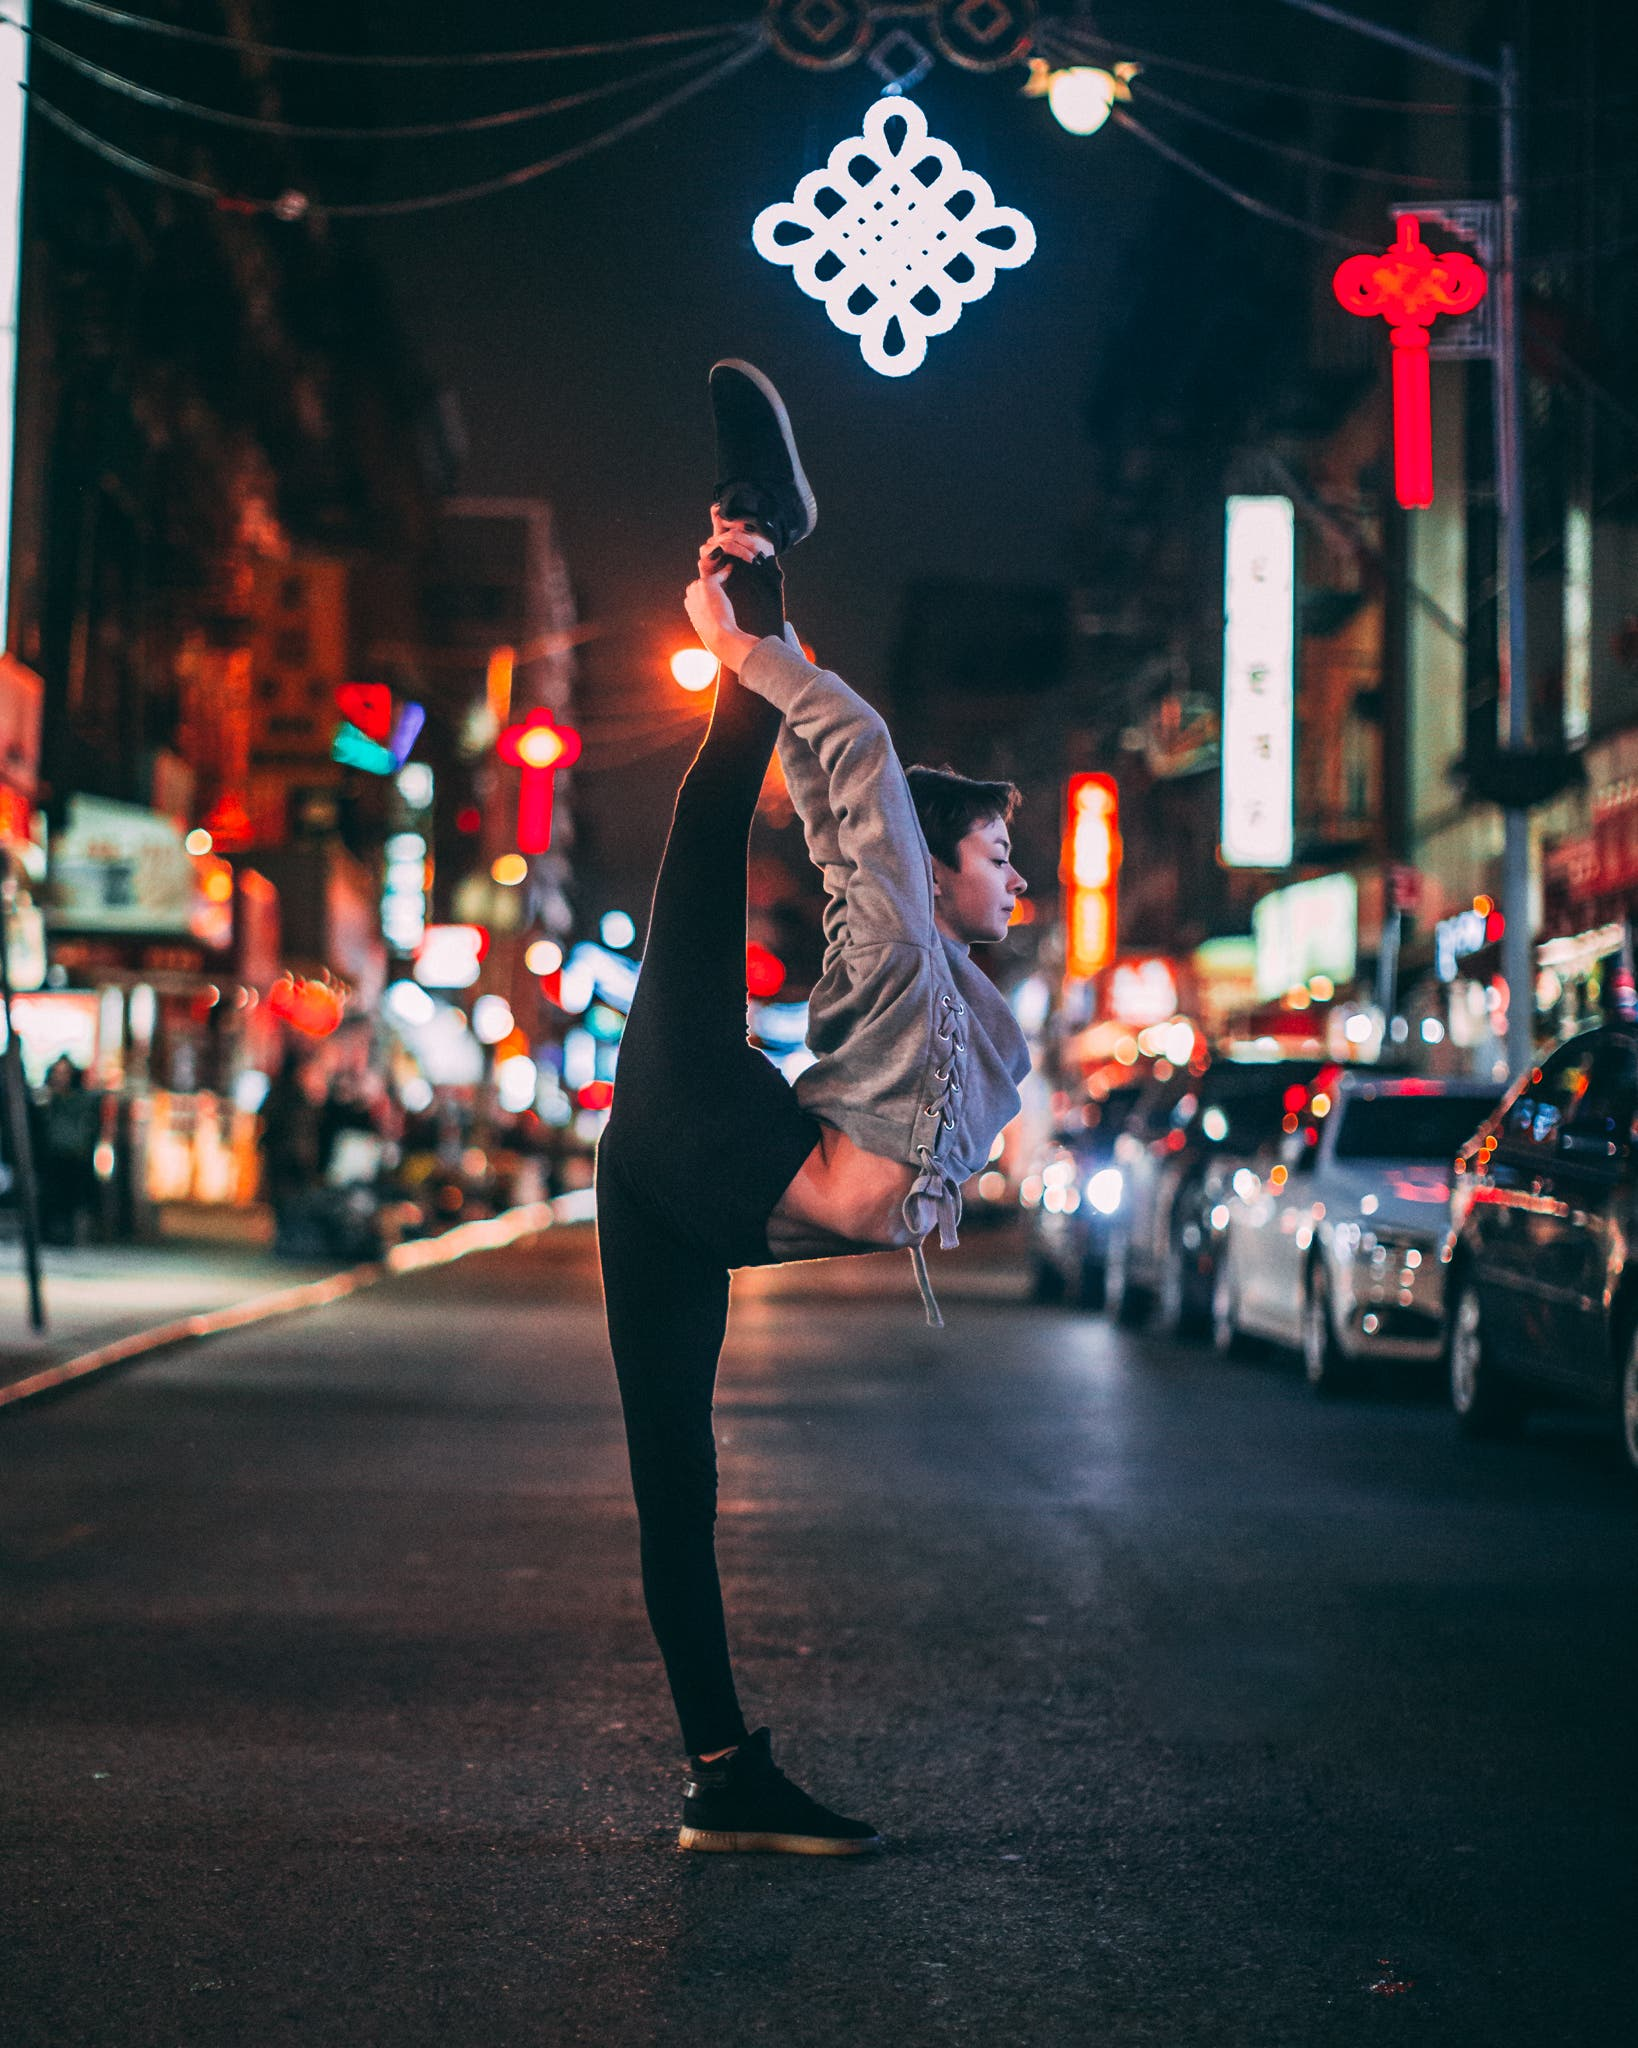 Dance Photographer Kien Quan Is Our Next Guest on Inside the Photographer's Mind